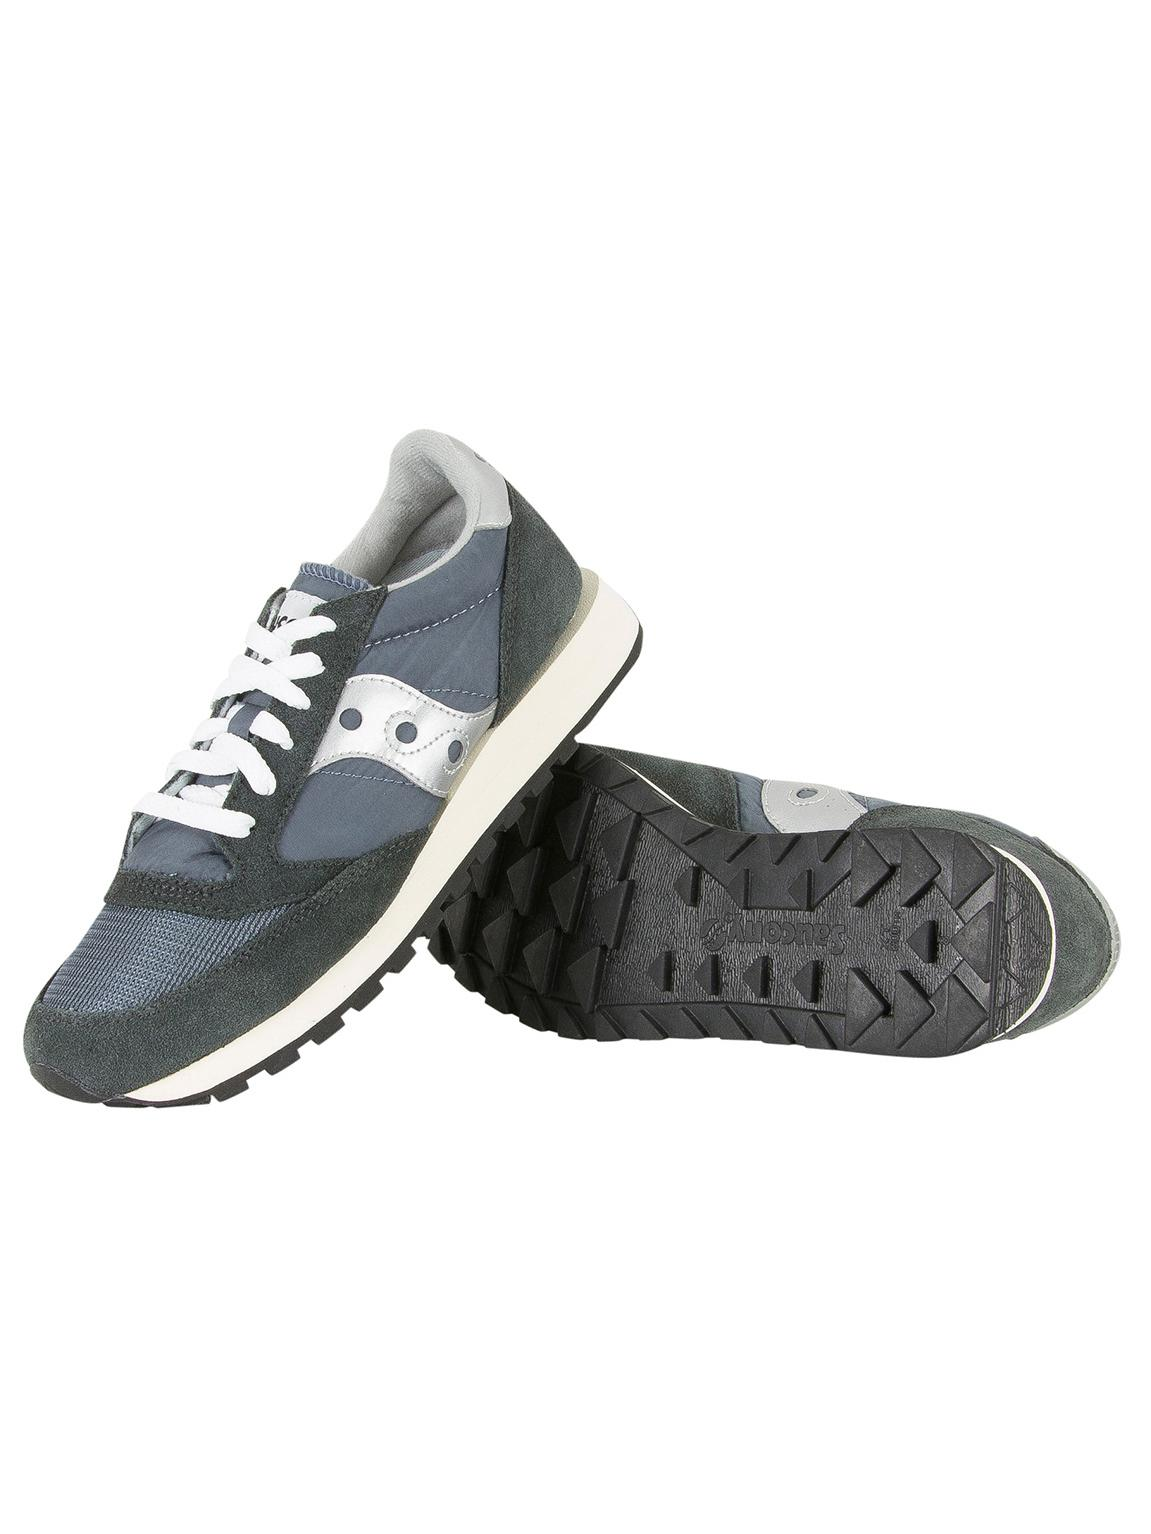 8204509d8bc7 Lyst - Saucony Blue navy silver Jazz Original Vintage Trainers in Blue for  Men